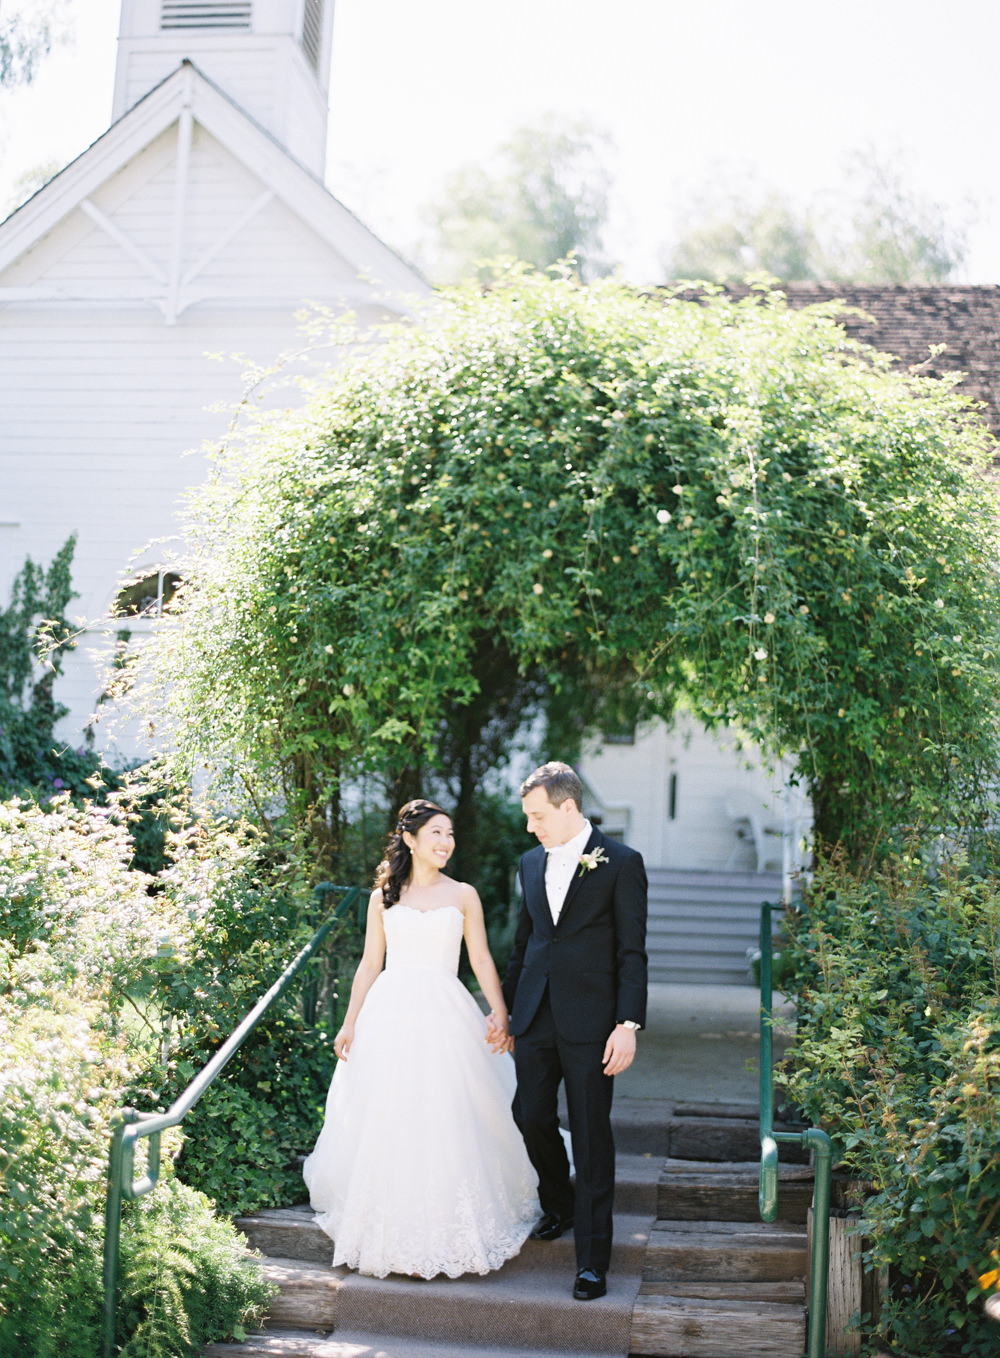 RomanticGardenWedding_WhiskersandWillow_049.jpg